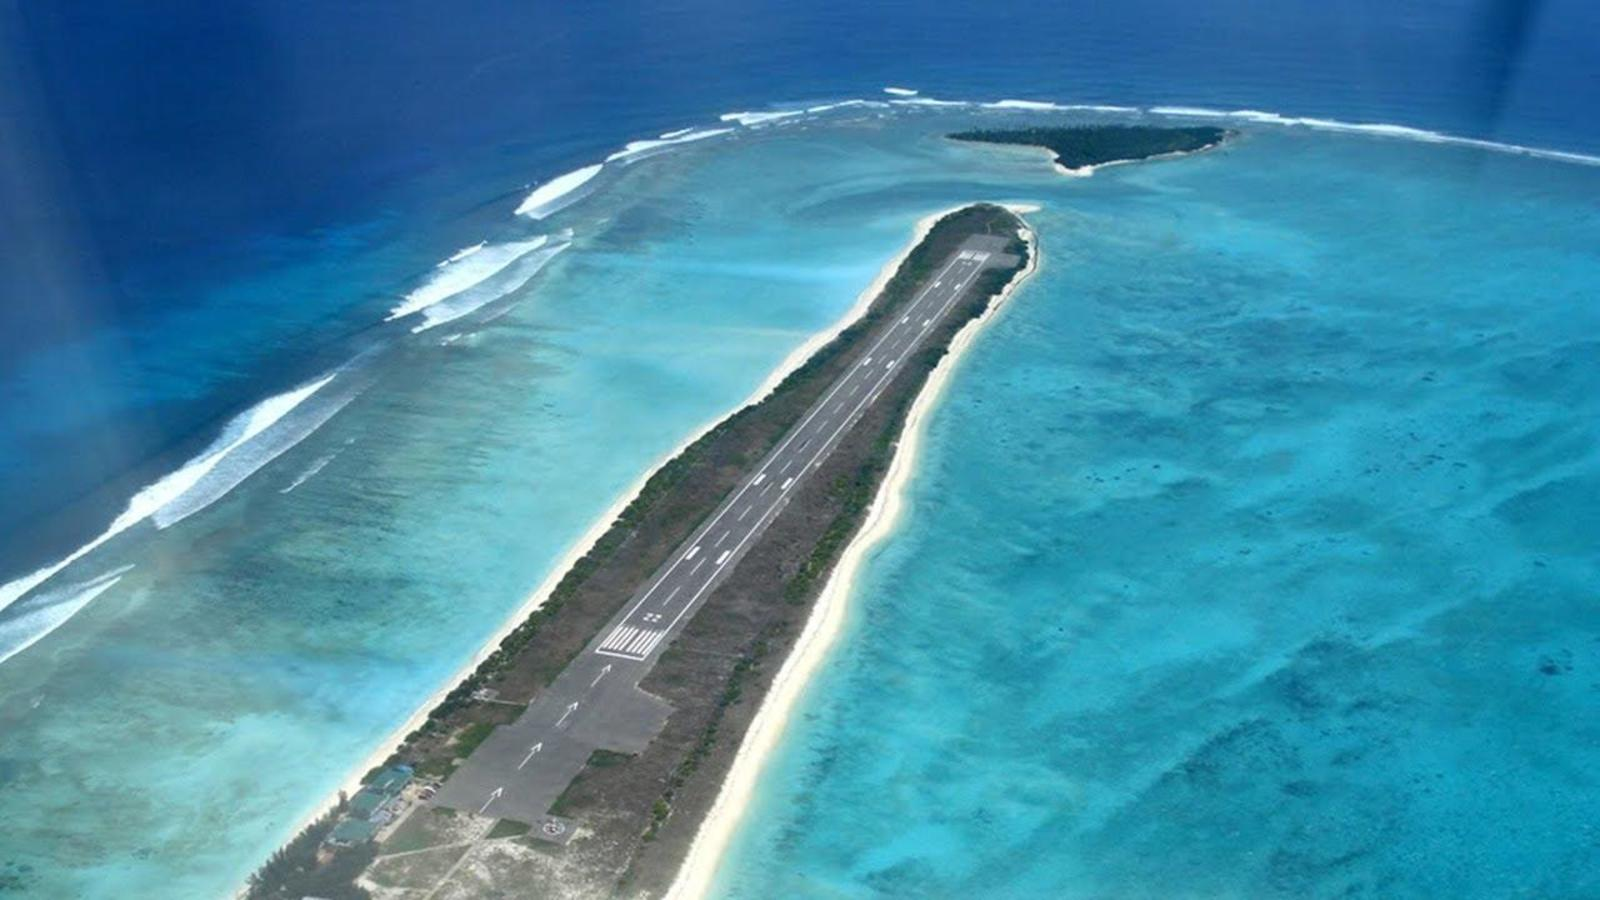 most_dangerous_airports_in_the_world_3_1